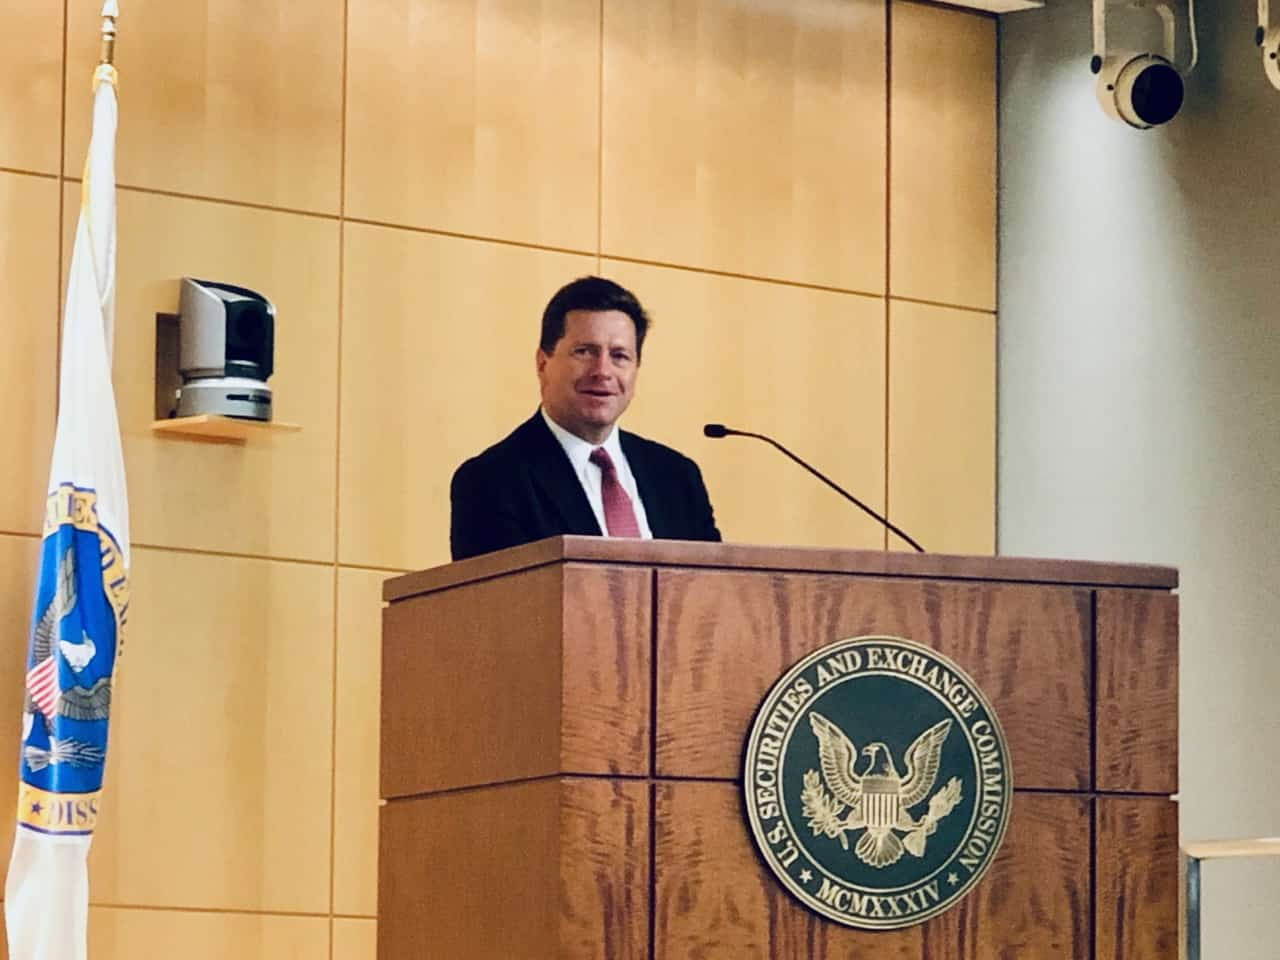 SEC Chairman Jay Clayton: Main Street investors should be able to invest in the private market on terms similar to those available to institutional investors